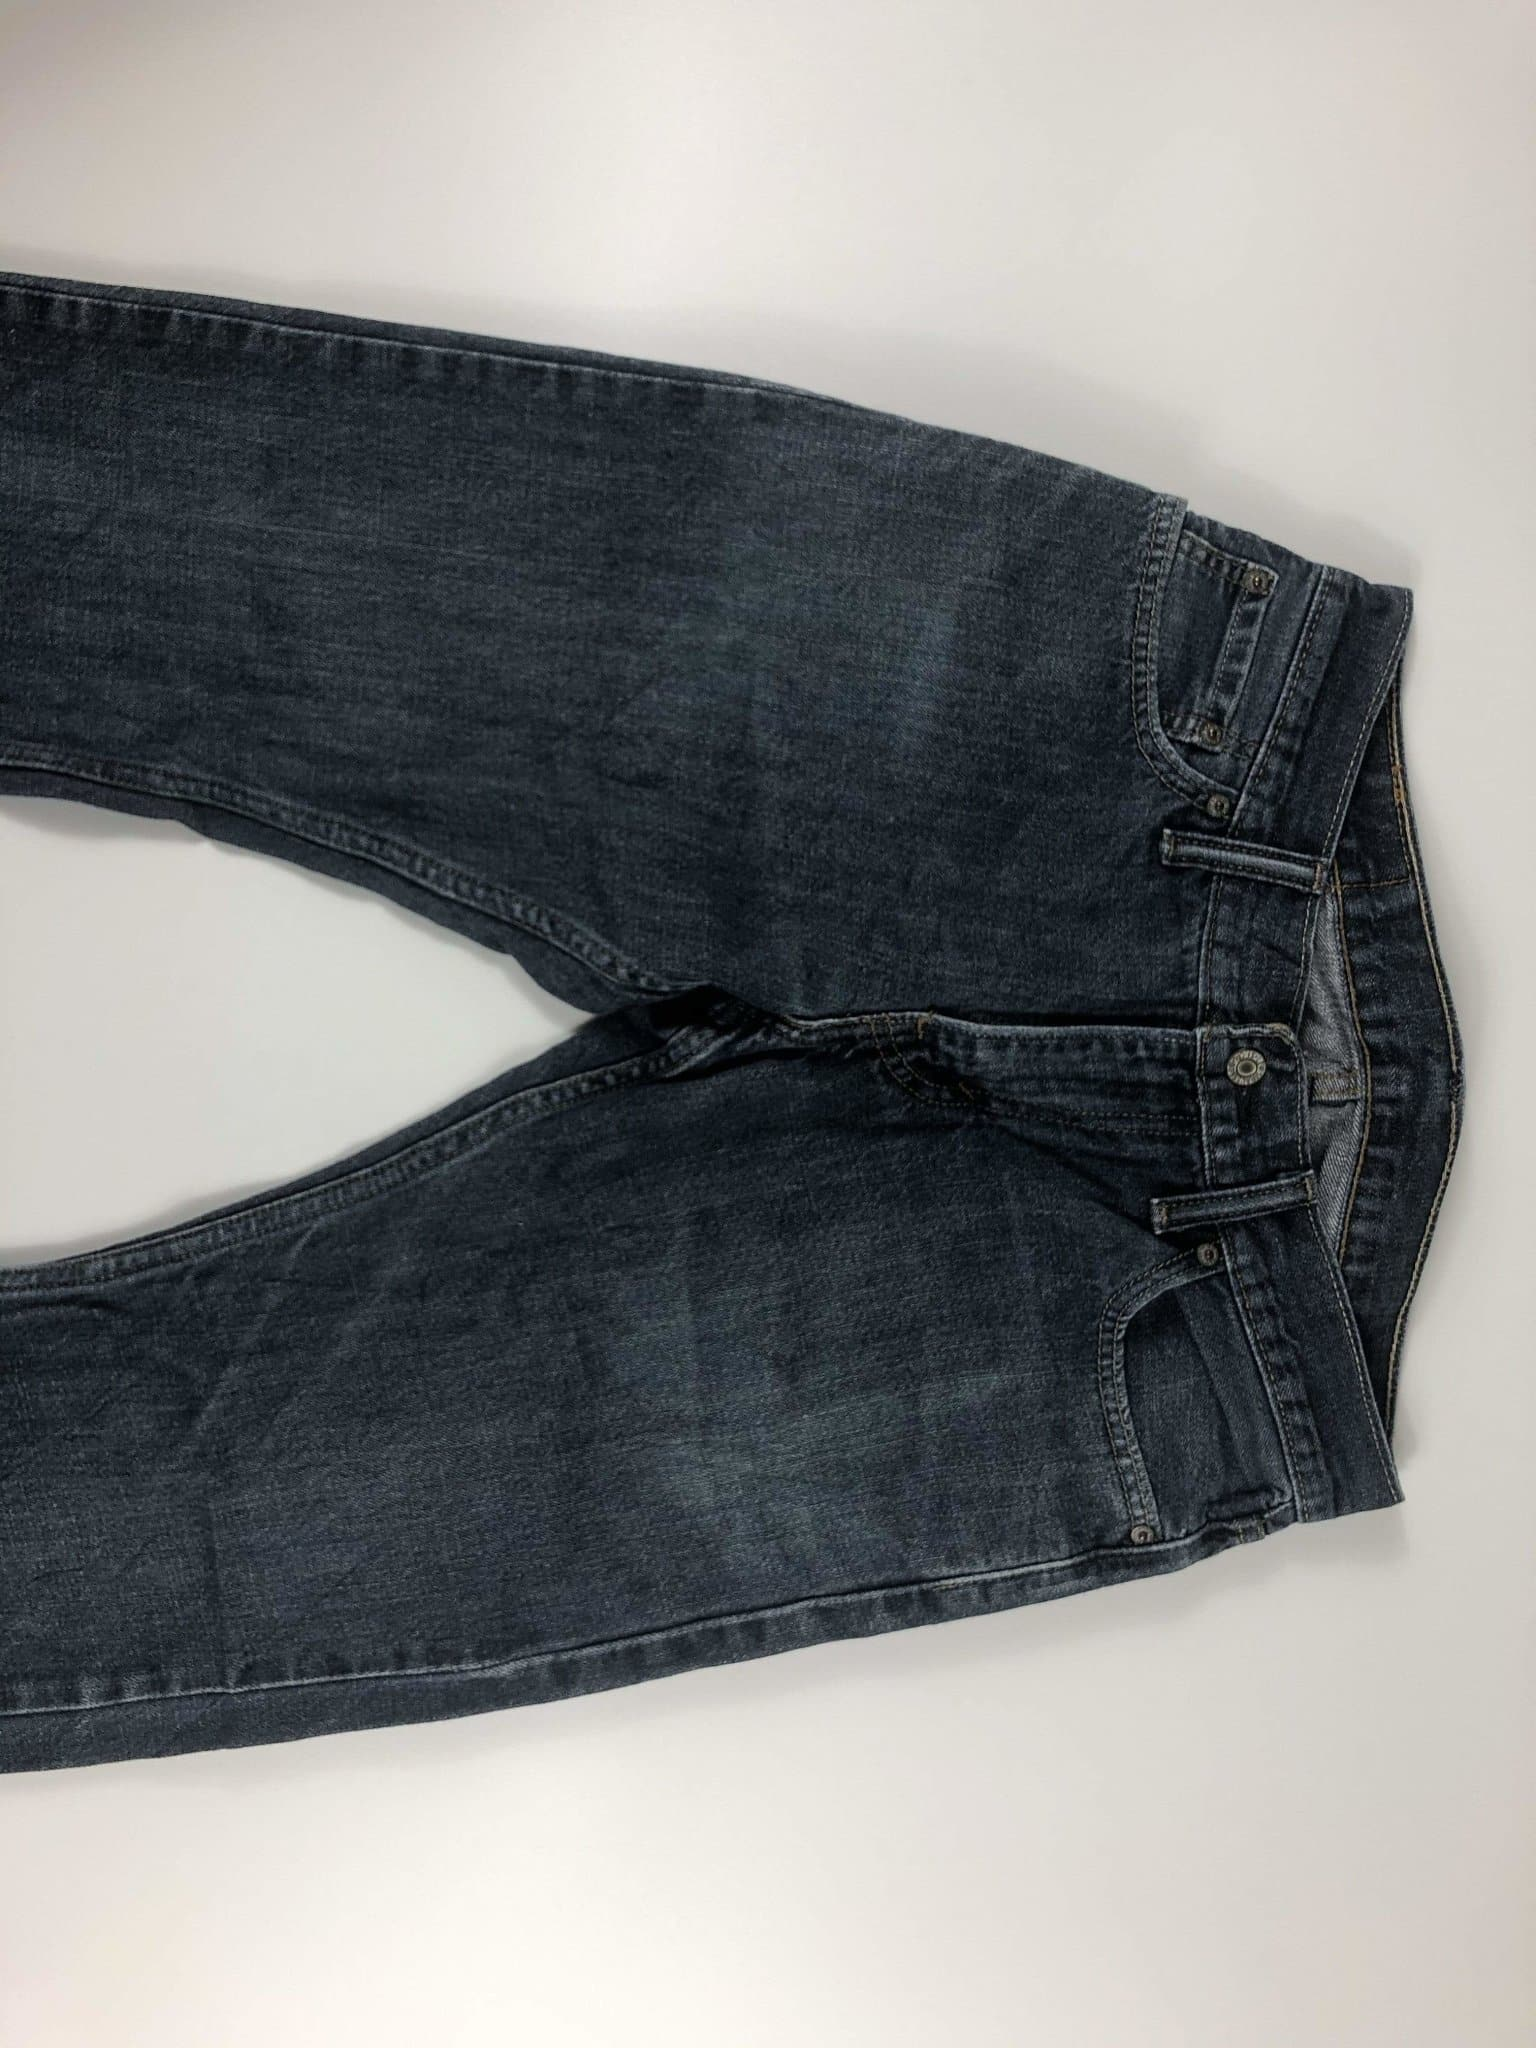 Vintage Levi's Classic 514 Jeans W30 L30 (B2) - Discounted Deals UK